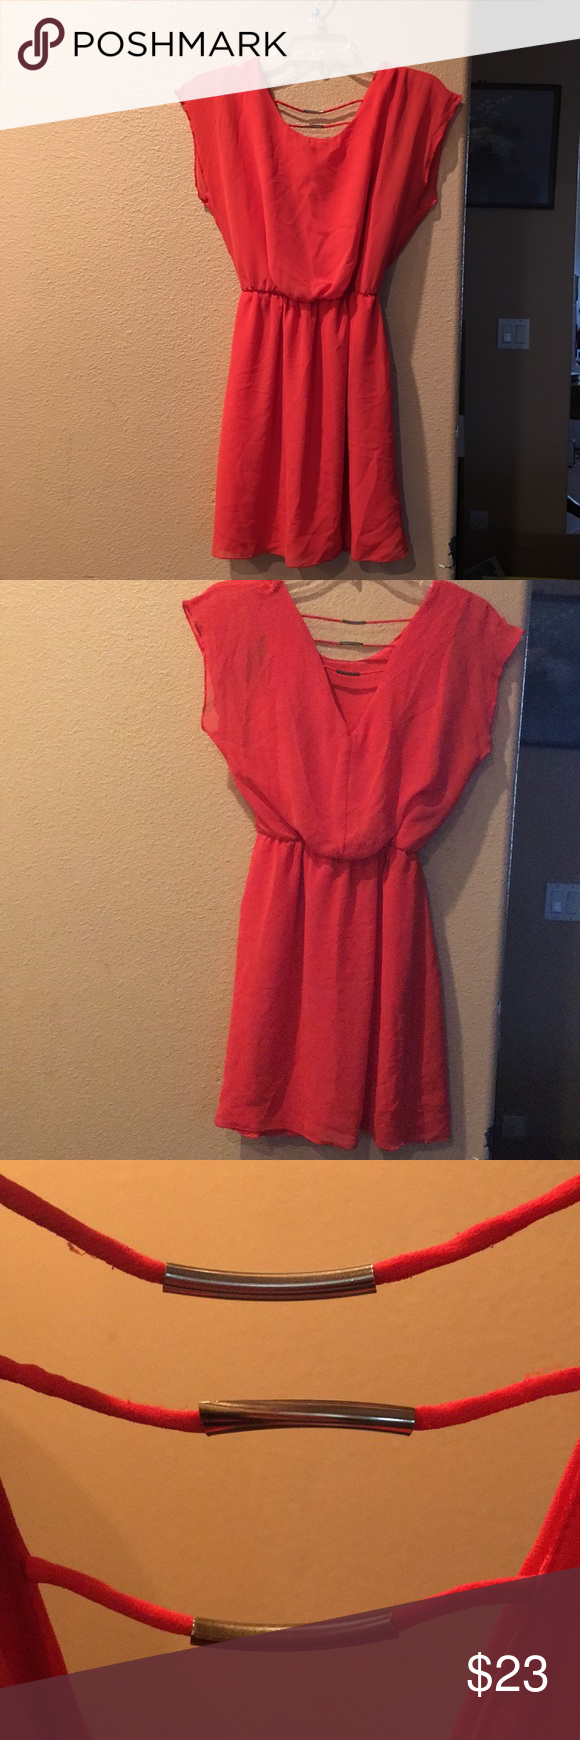 e98e0a925ad9 Sweet Storm Coral Dress Size is small. Made in Indonesia. Shell and lining  is